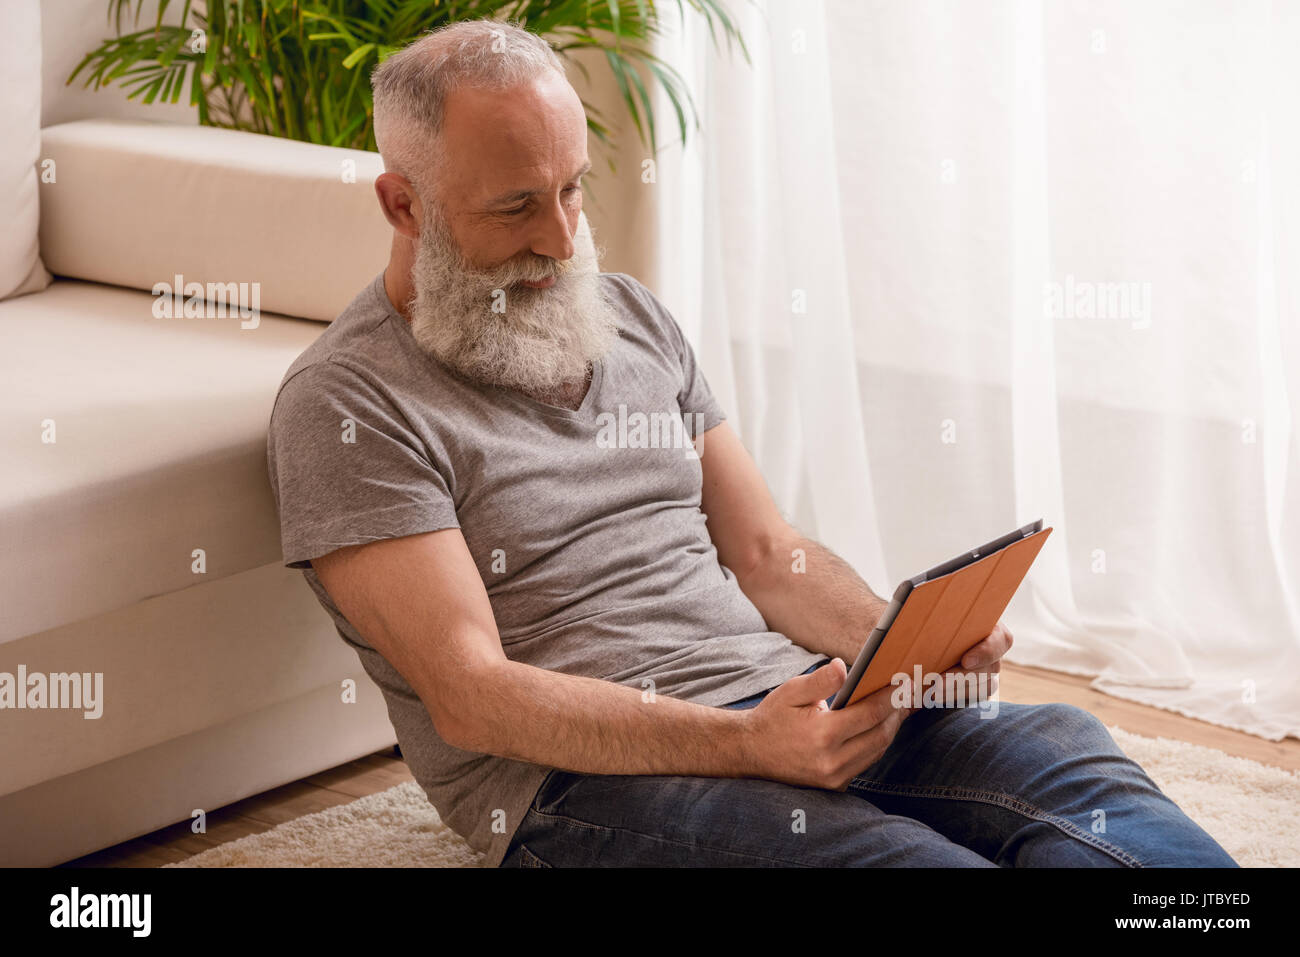 senior bearded man smiling and using digital tablet and sitting on floor at home - Stock Image